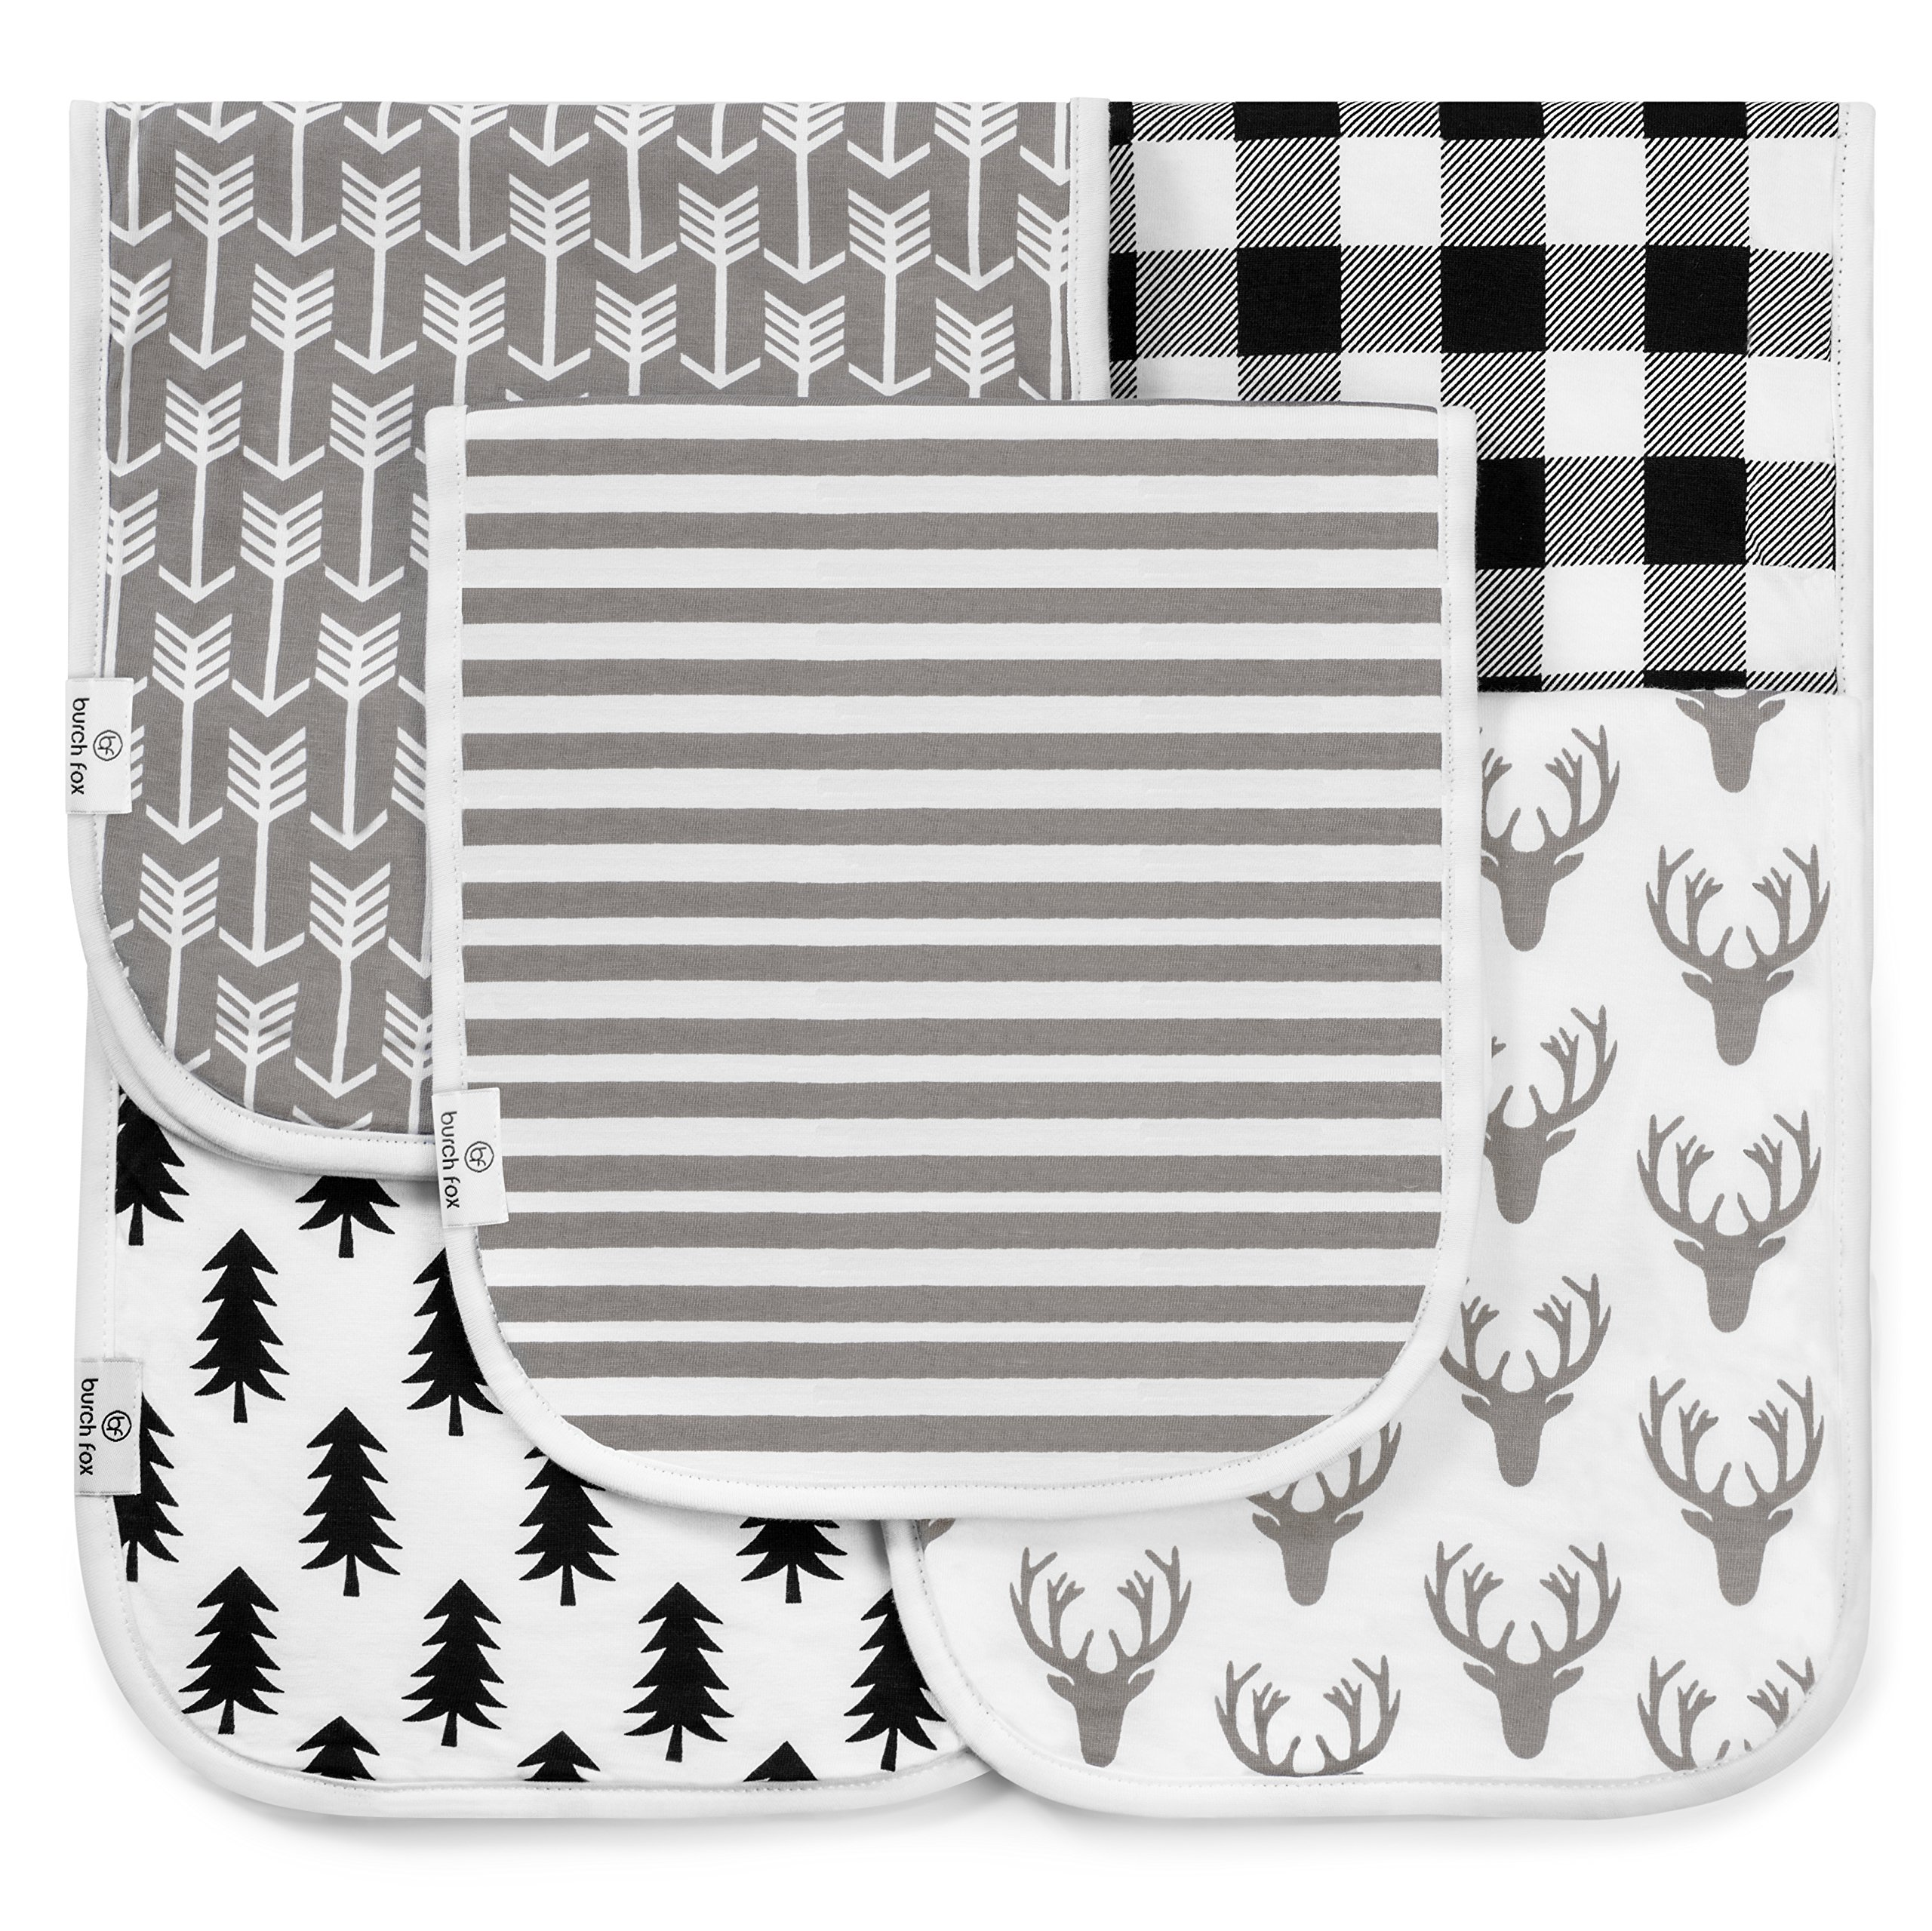 Baby Burp Cloths for Girls and Boys, 5 Pack Set, 100% Organic Cotton, Large 21'' x 10'' Burping rags, 3 Layer, Thick, Absorbent and Super Soft, Unisex Woodland Design in White, Gray, Black, by Burch Fox